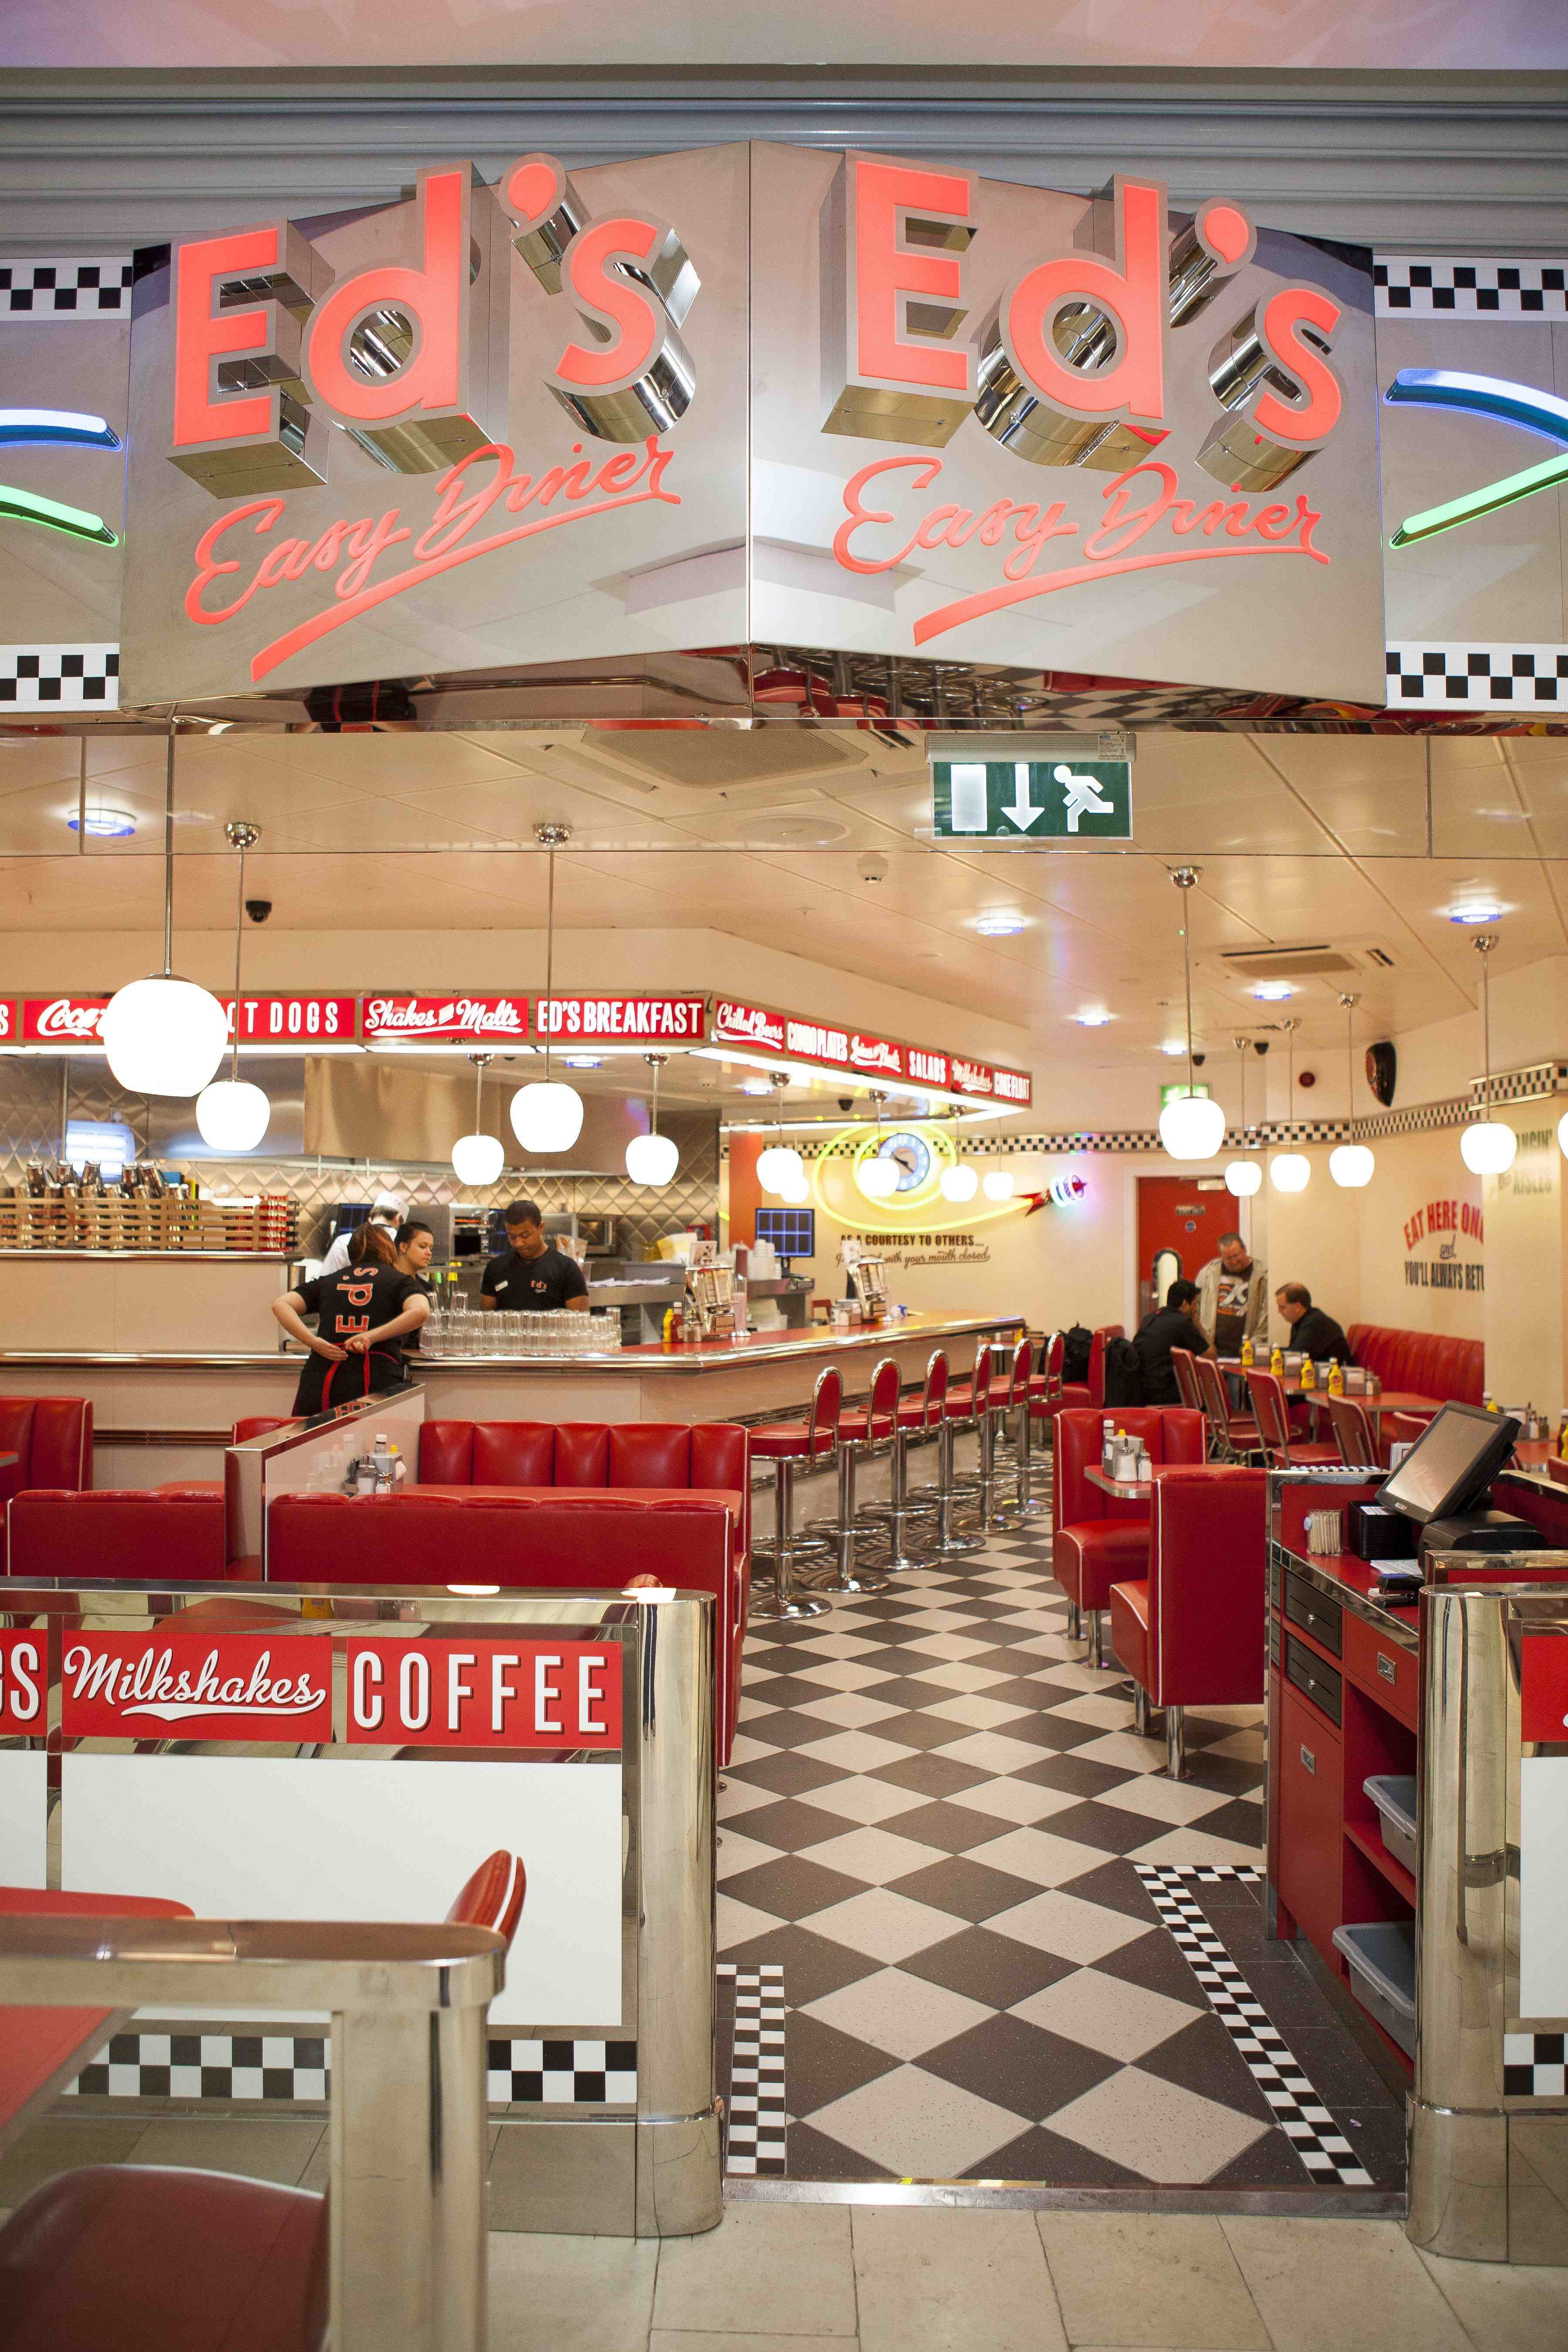 Küche American Diner Style 1950 39s Burger Diners All American Menu At Eds Diner In